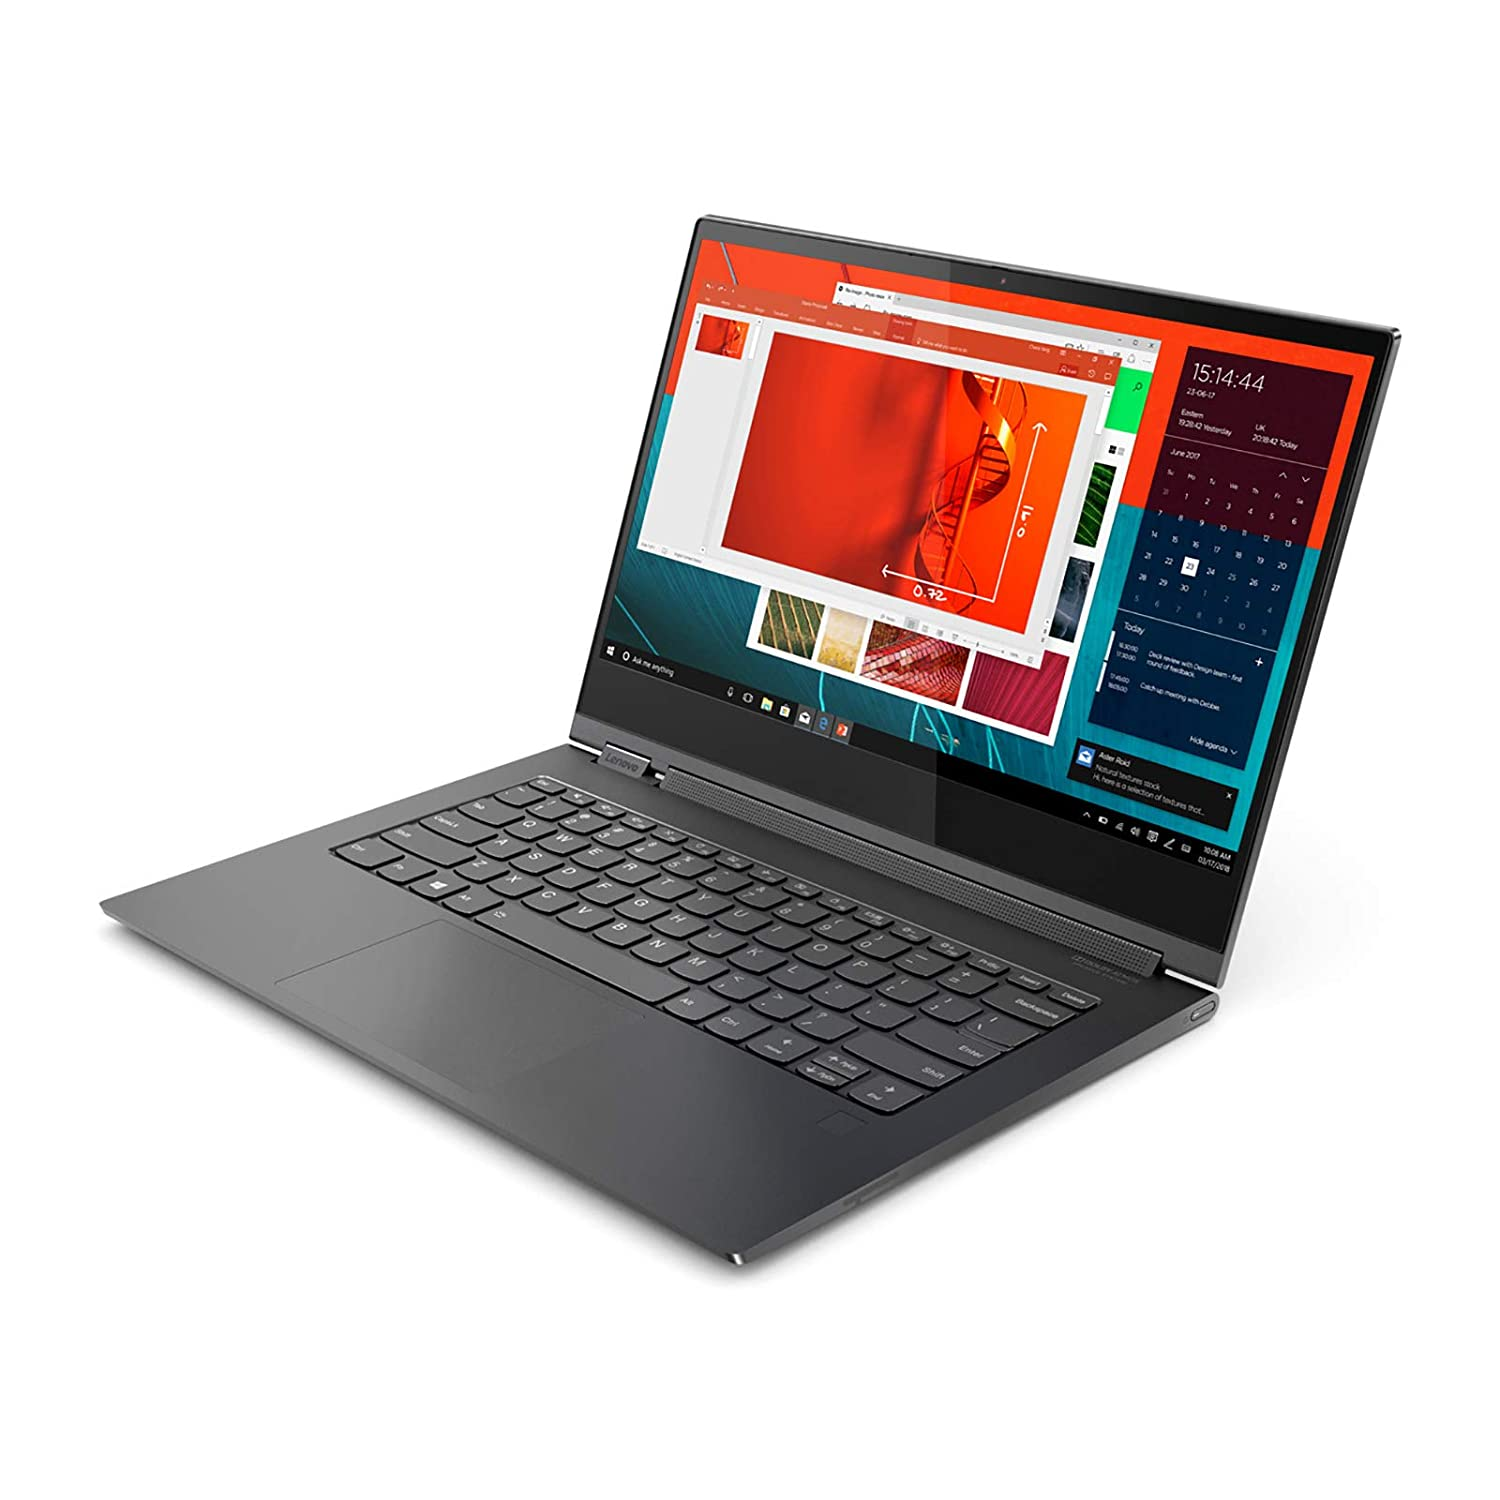 Lenovo Yoga 81C4004-GAX 2-in-1 Laptop, Intel Core i7